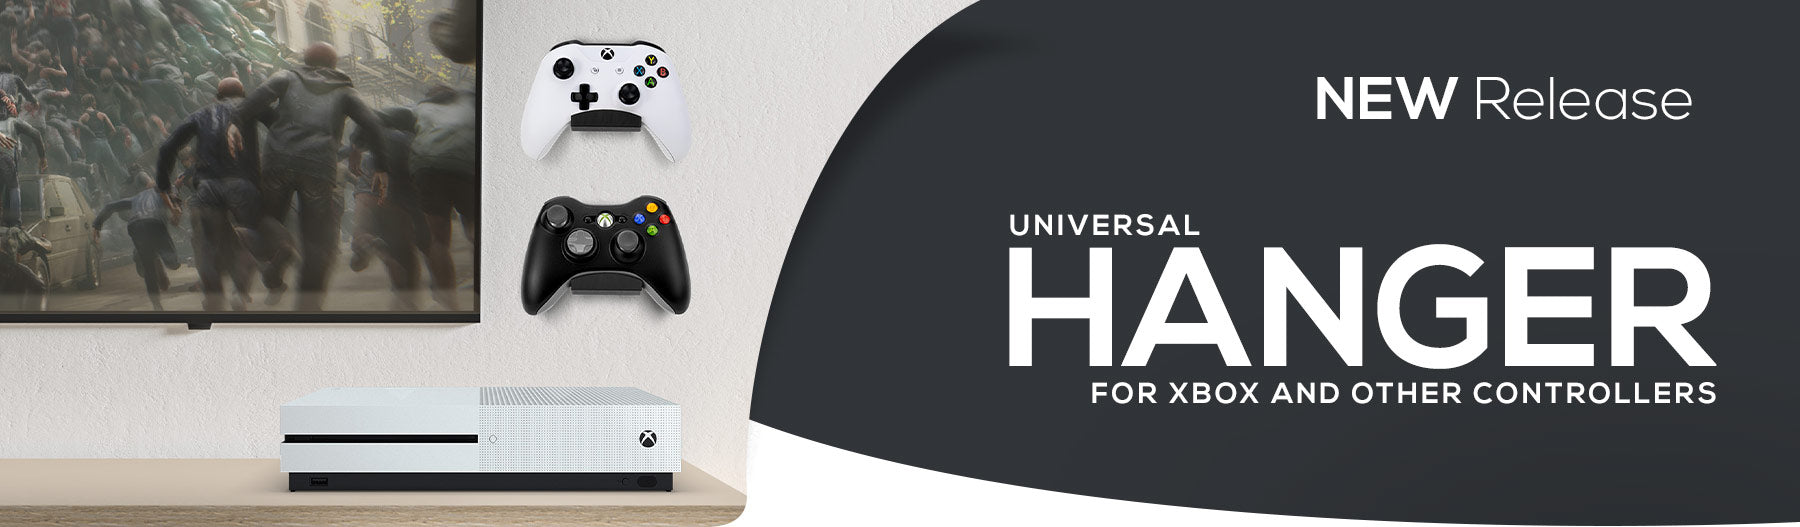 NEW - Universal Game Controller Hanger